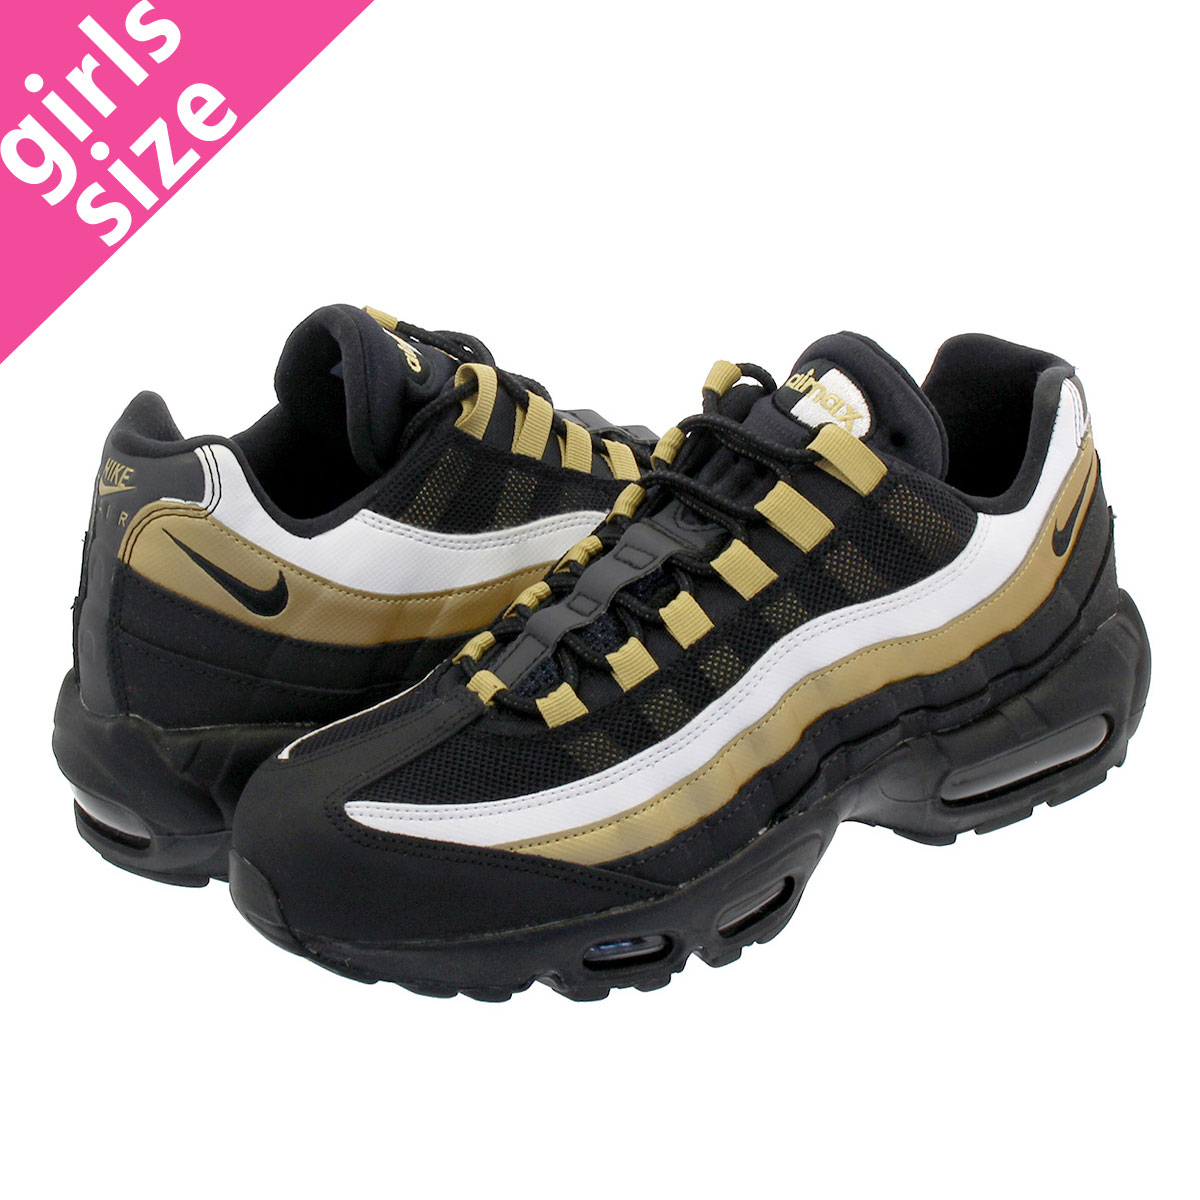 3fb69fa62c2f LOWTEX BIG-SMALL SHOP  NIKE AIR MAX 95 OG Kie Ney AMAX 95 OG BLACK ...